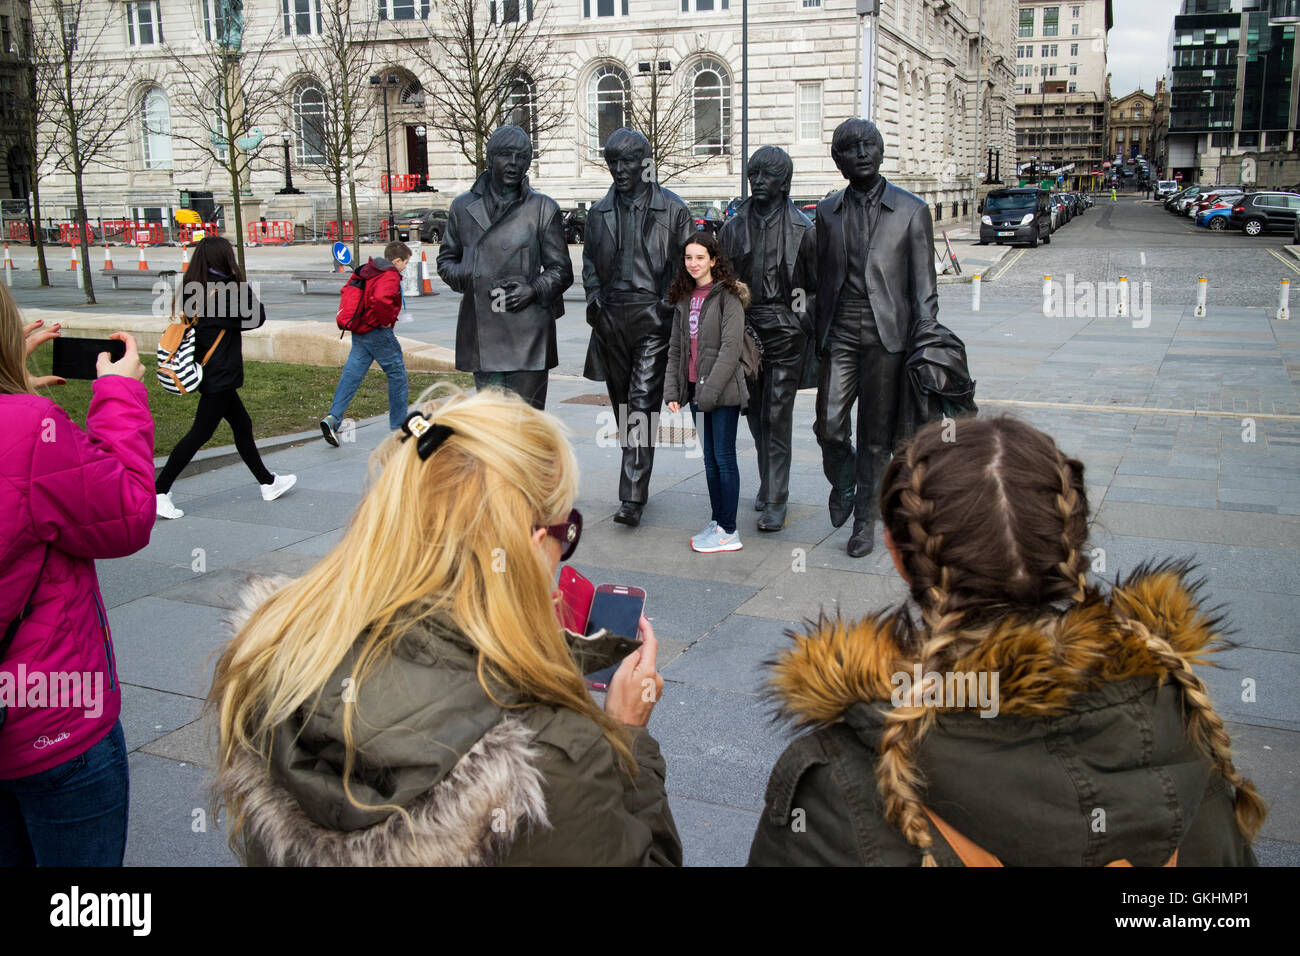 female tourists taking photos at The Beatles statue sculpture at Pier Head on Liverpools waterfront - Stock Image